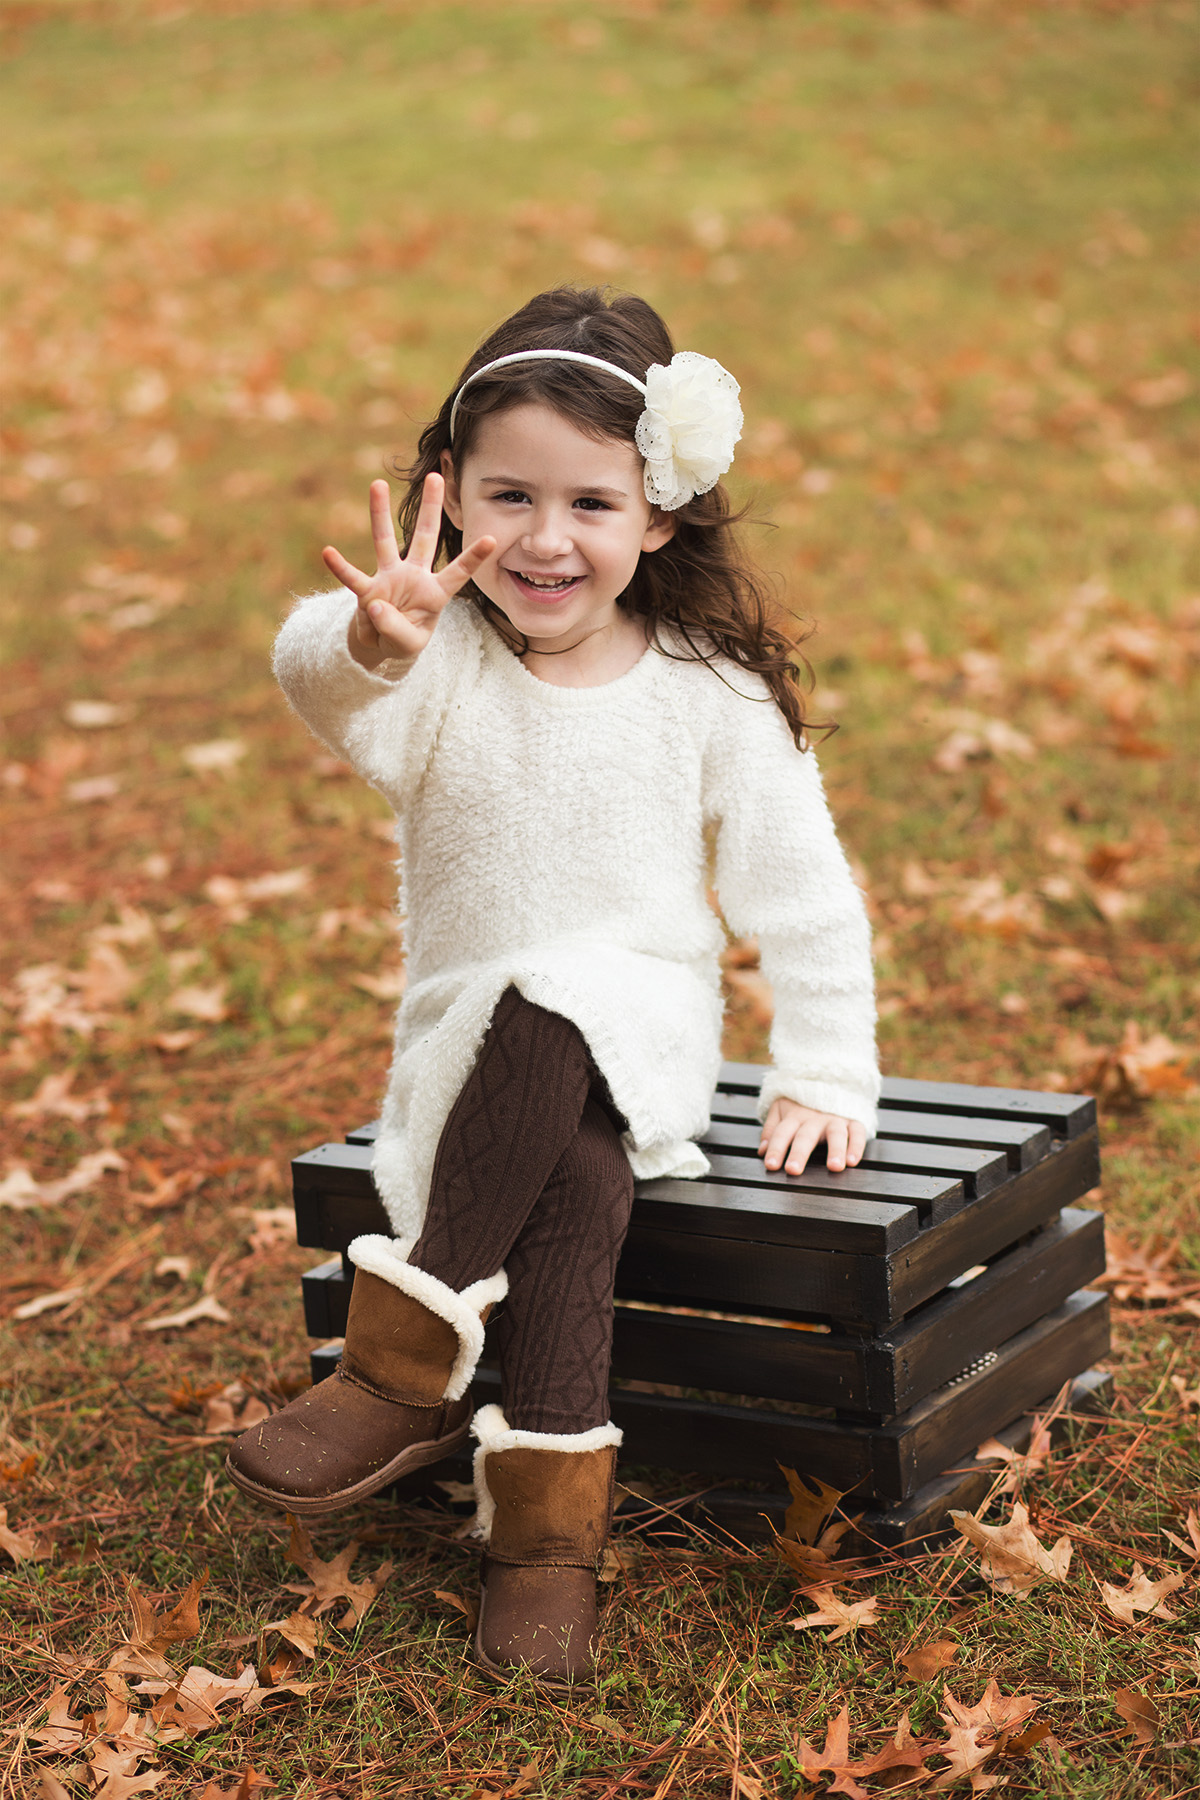 little girl wearing sweater and head band sitting on wood crate harrah oklahoma